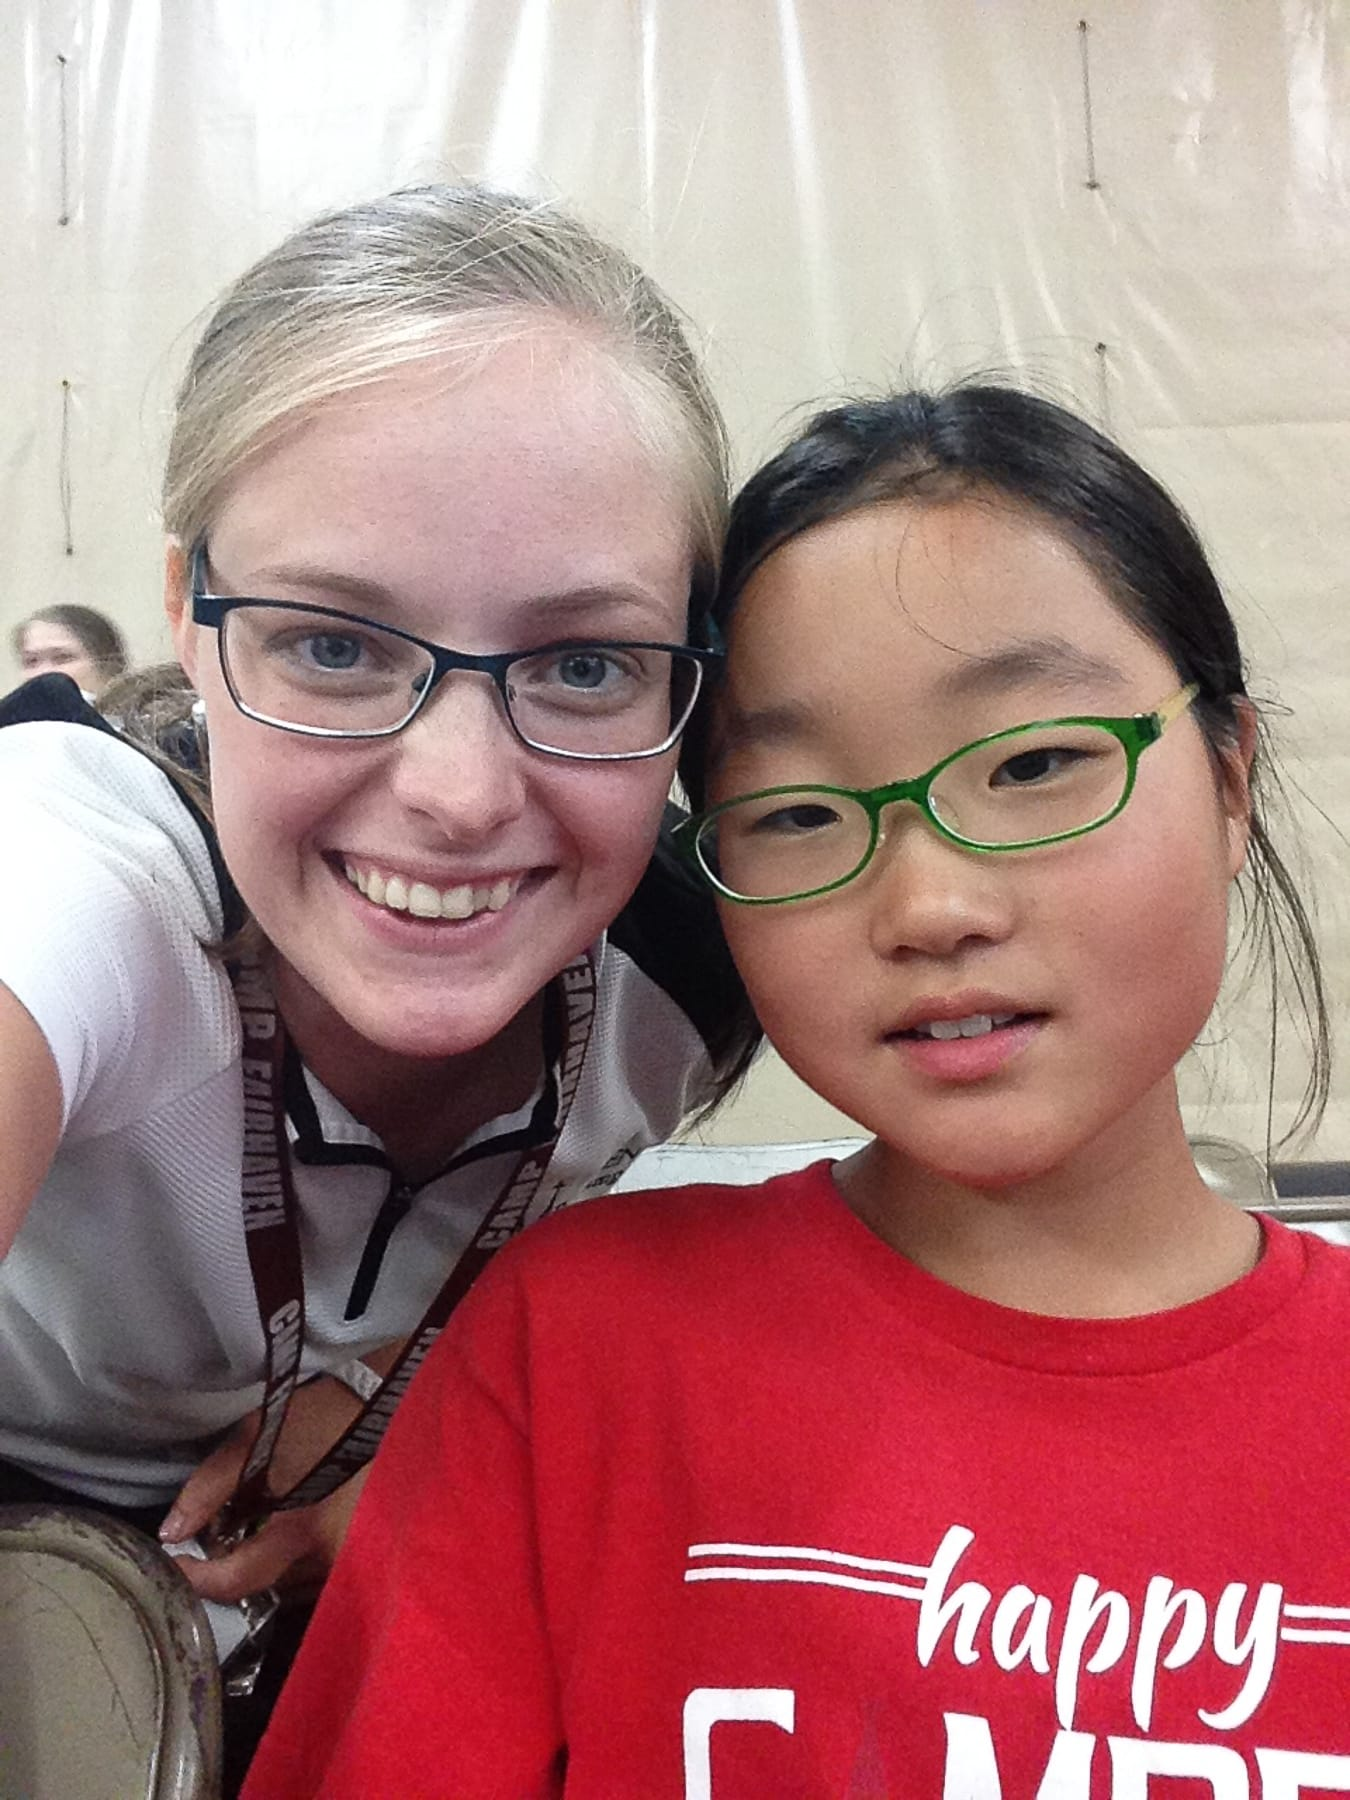 Camp Fairhaven 2016 (5 of 5)